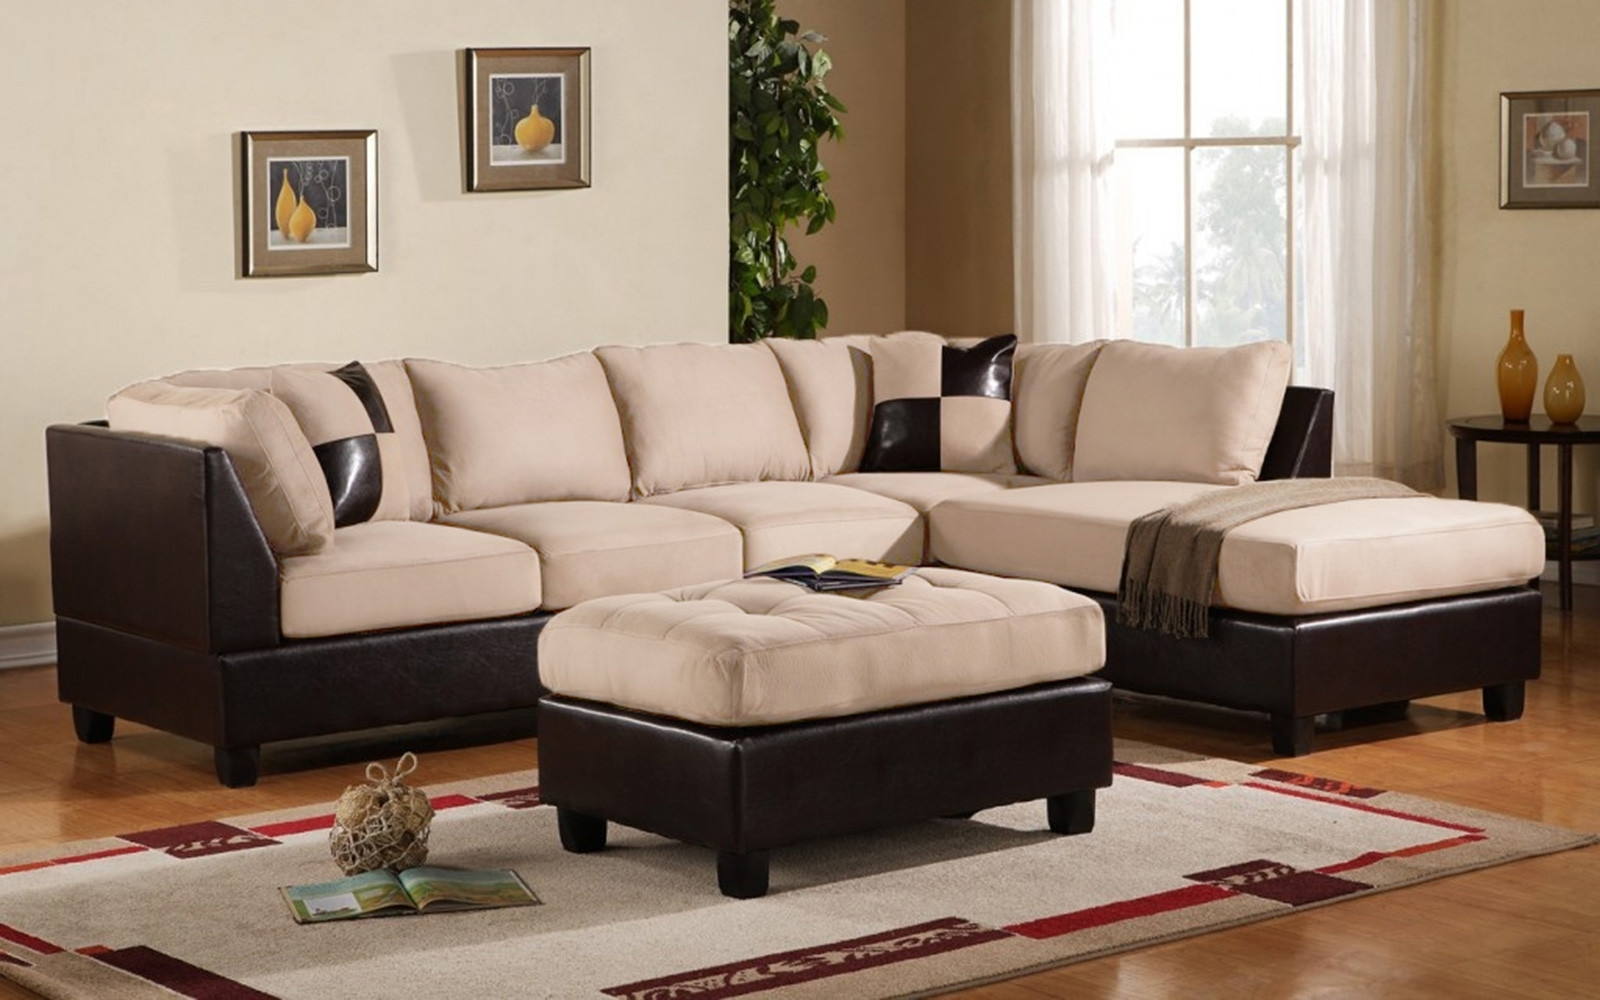 Faux Suede Sectional Sofa – Home And Textiles Pertaining To Famous Queens Ny Sectional Sofas (View 3 of 15)